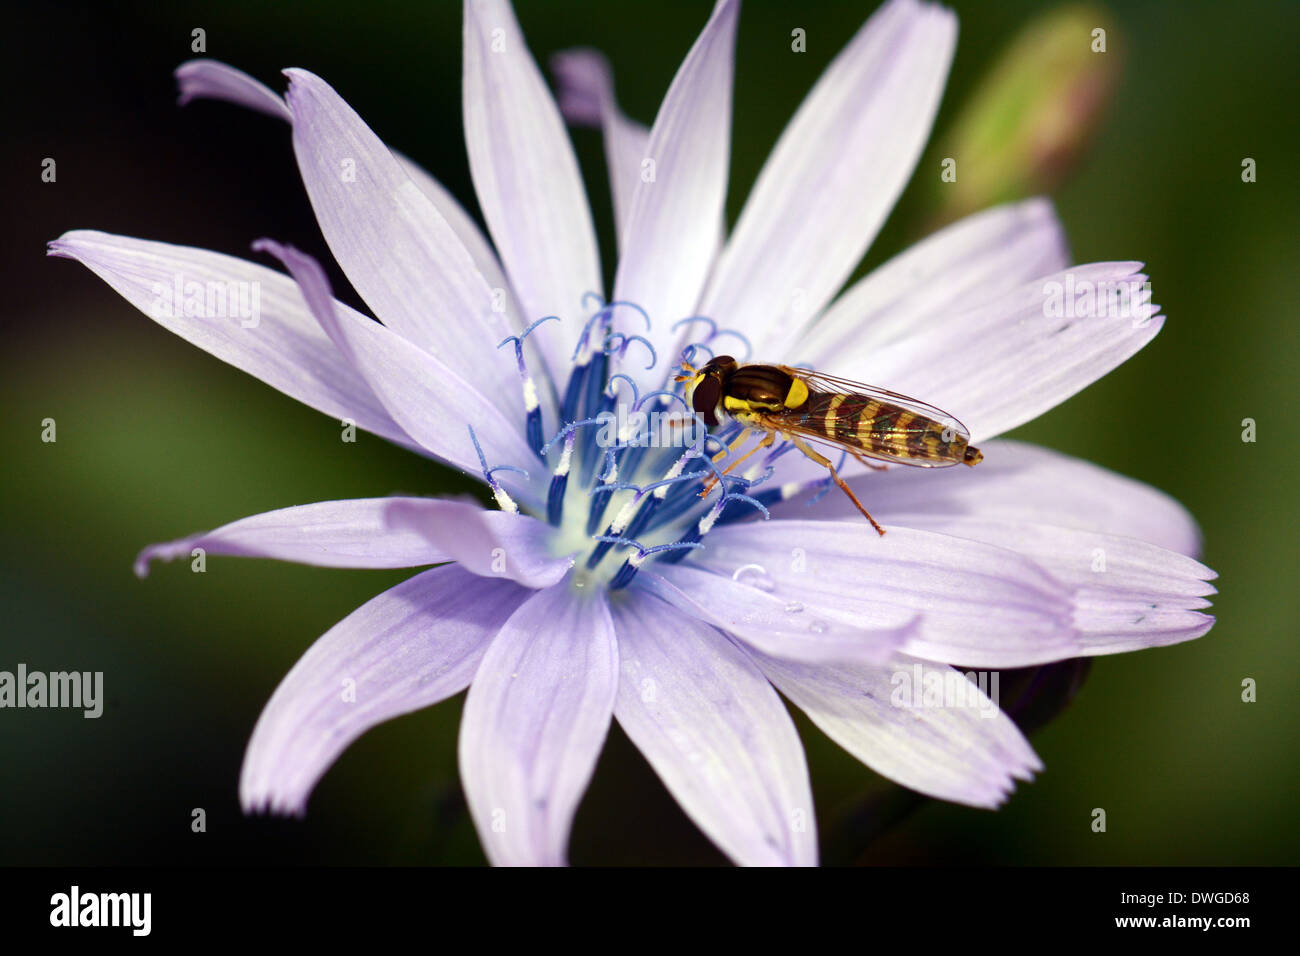 Hover fly on flower - Stock Image